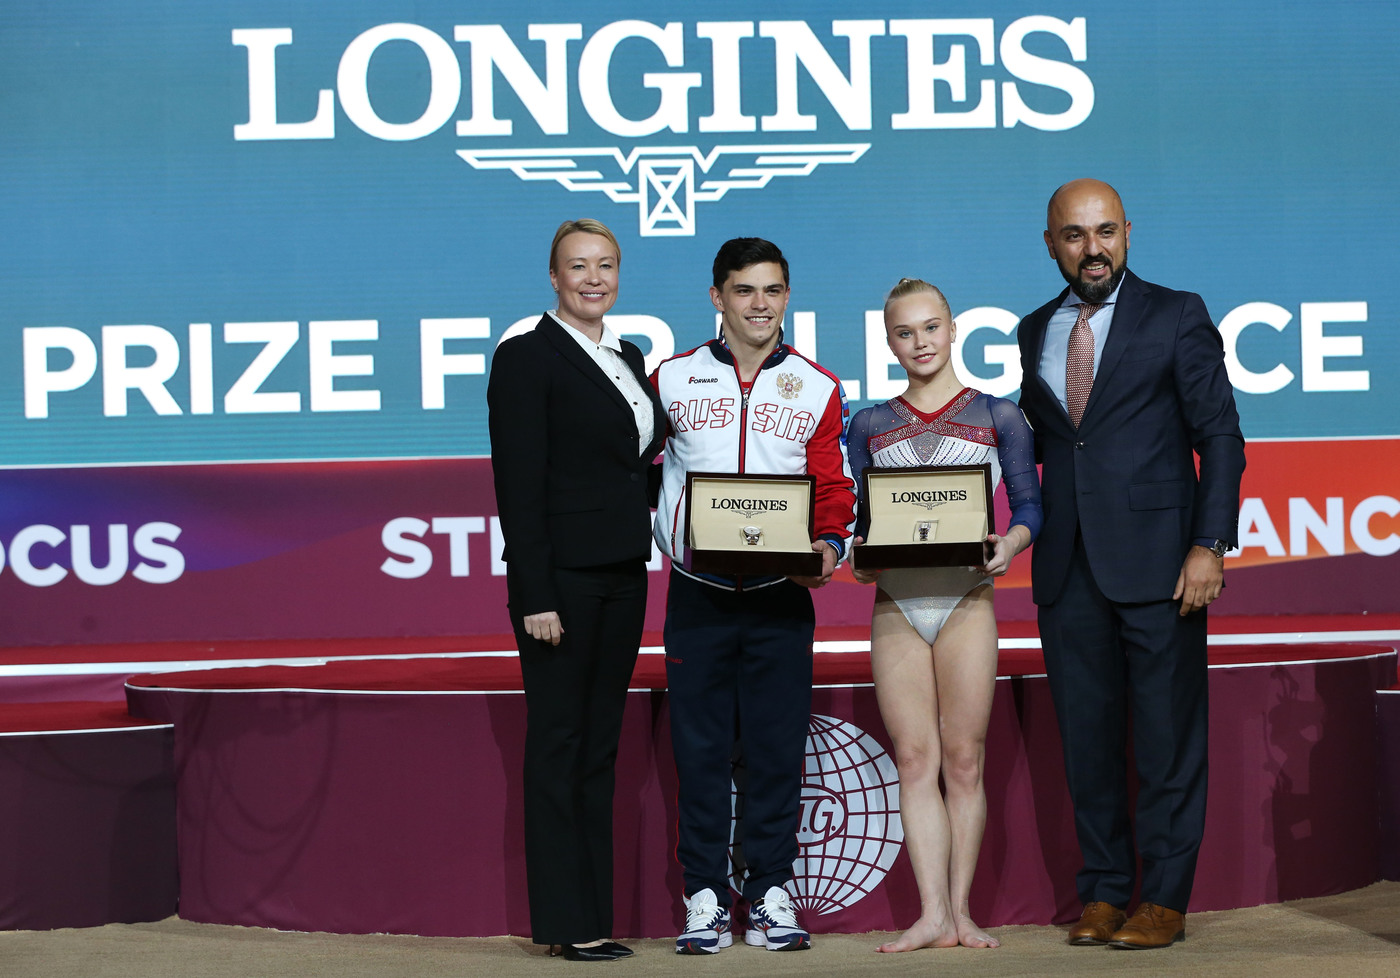 Longines Gymnastics Event: The Longines Prize for Elegance awarded to Russia's Angelina Melnikova and Russia's Artur Dalaloyan at the 48th Artistic Gymnastics World Championships in Doha 1